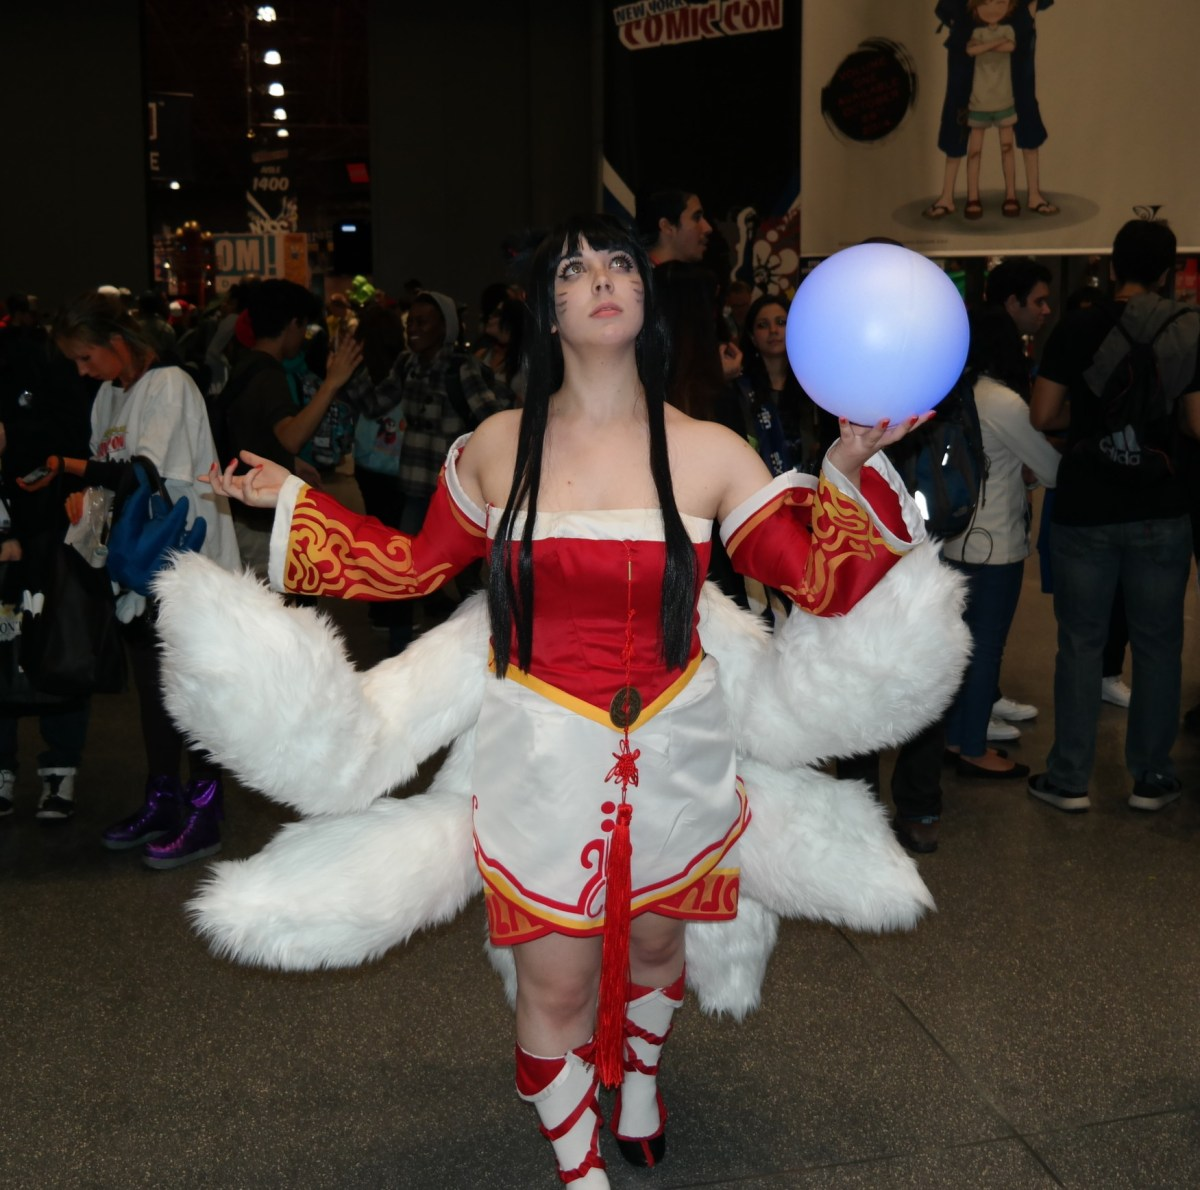 Cosplay at Comic Con 3